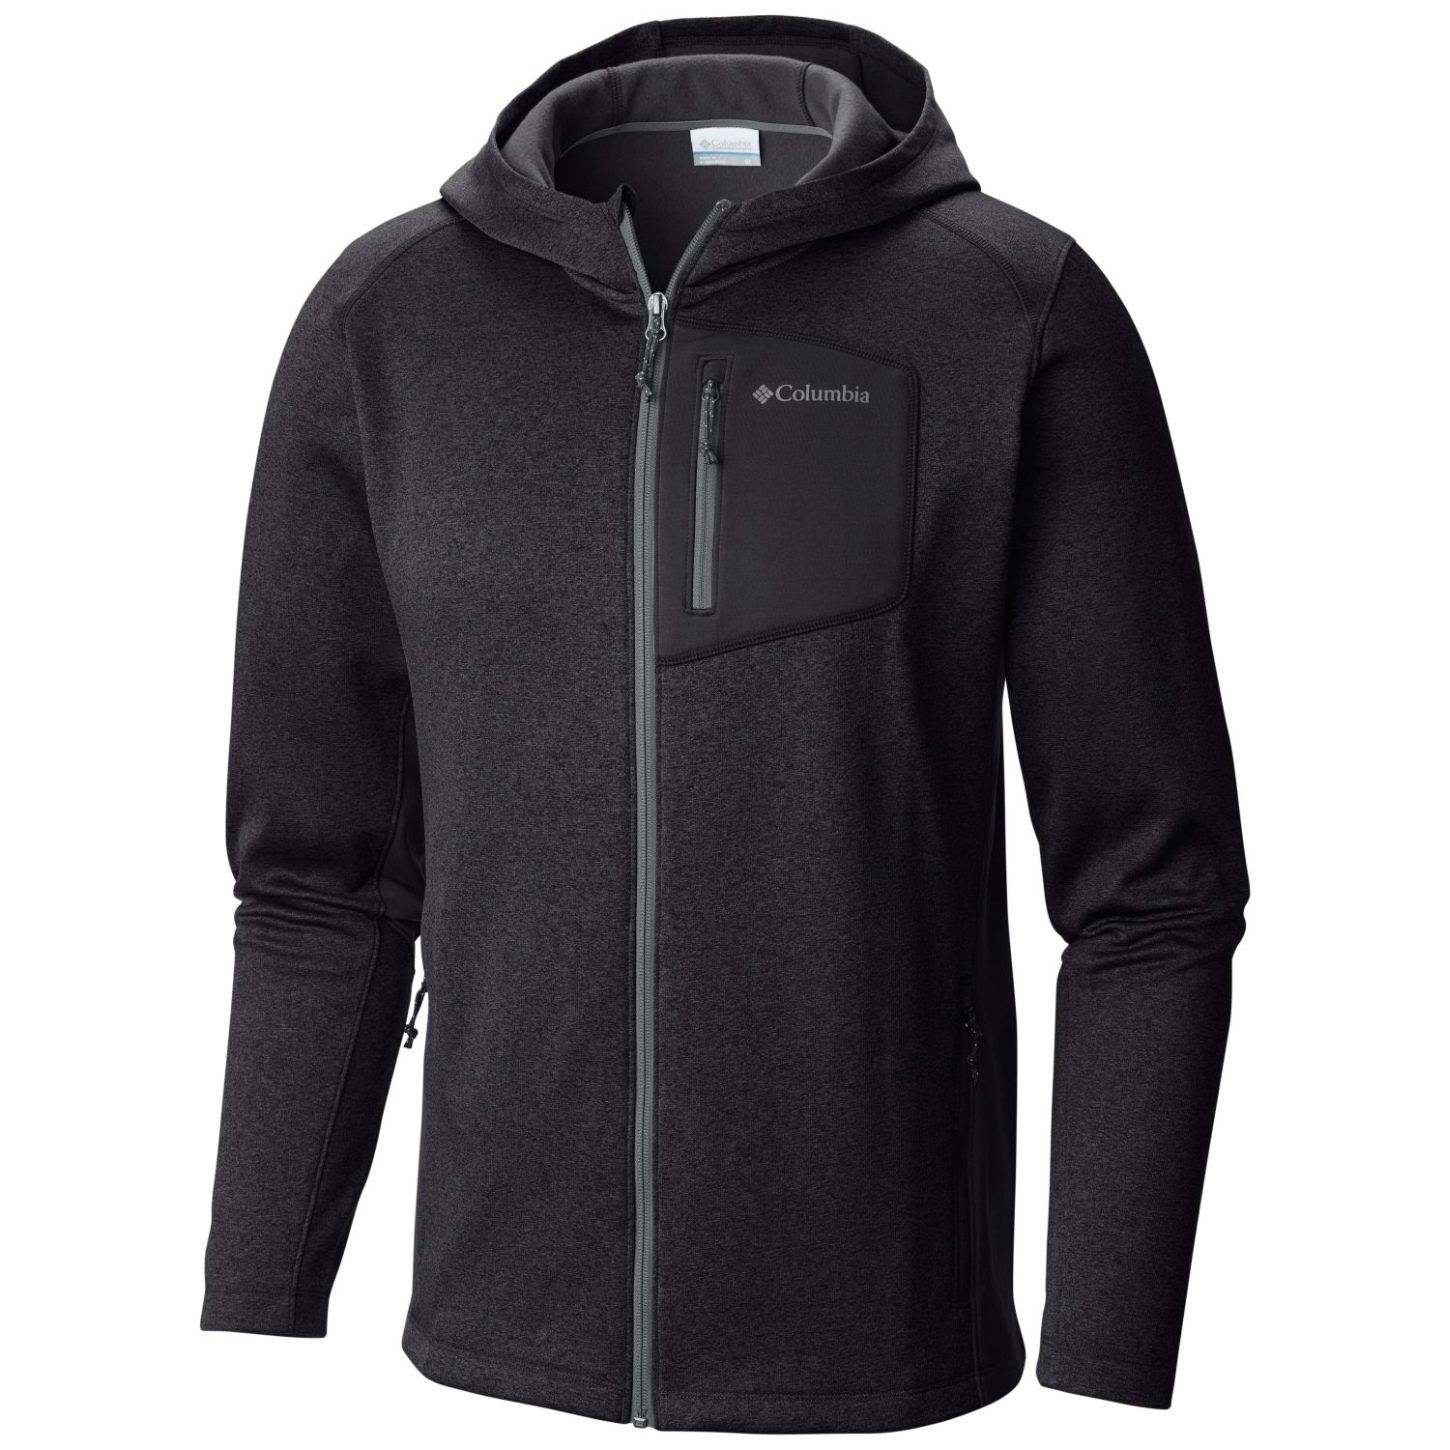 Columbia Jackson Creek II Kapuzenpulli für Herren Black Heather-30